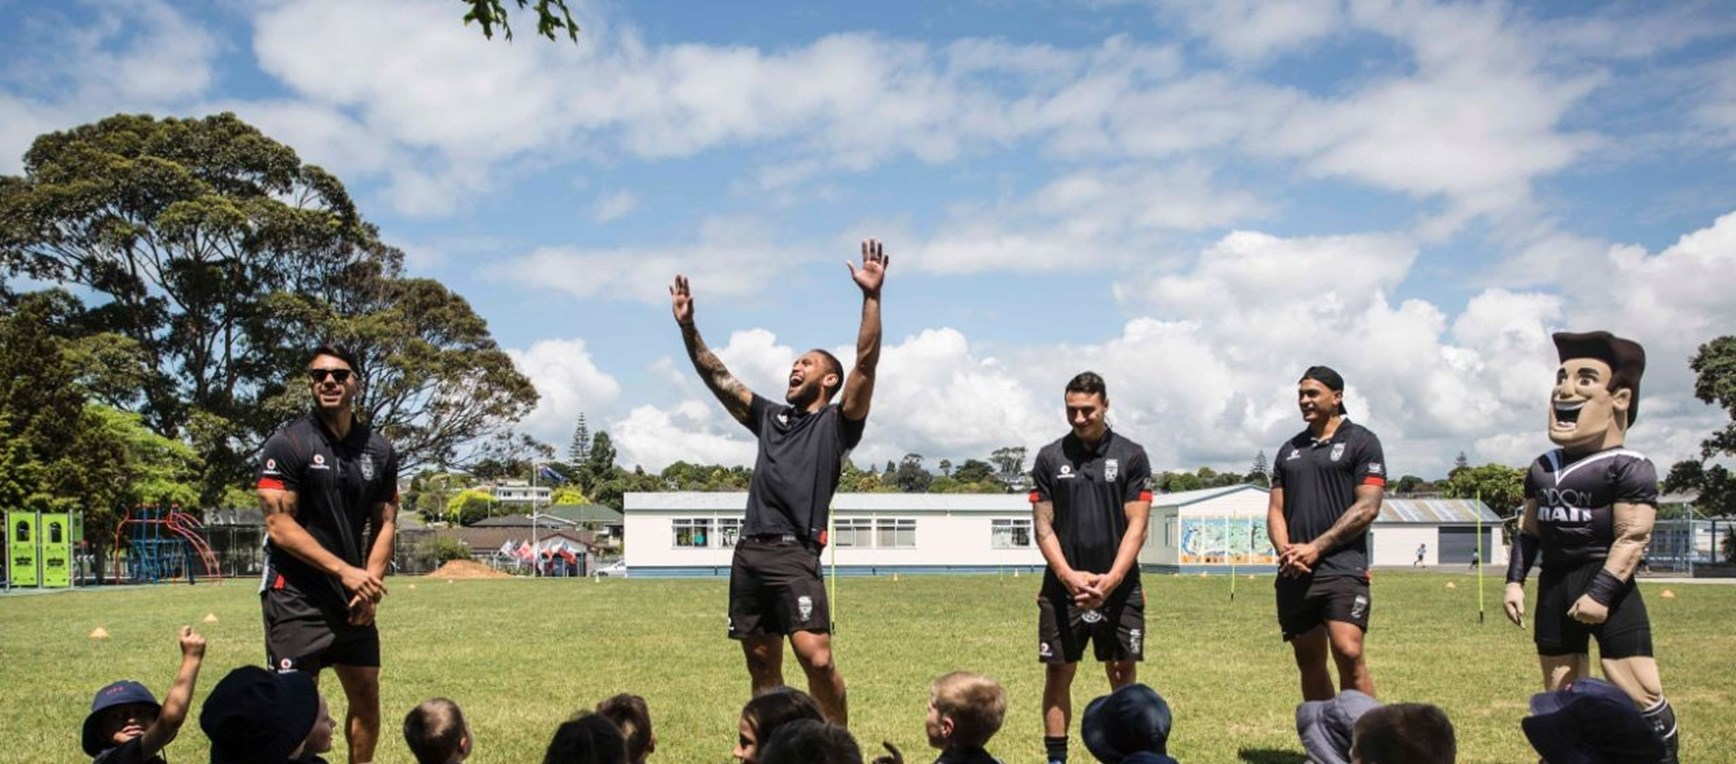 Owairoa School visit with Bendon Man